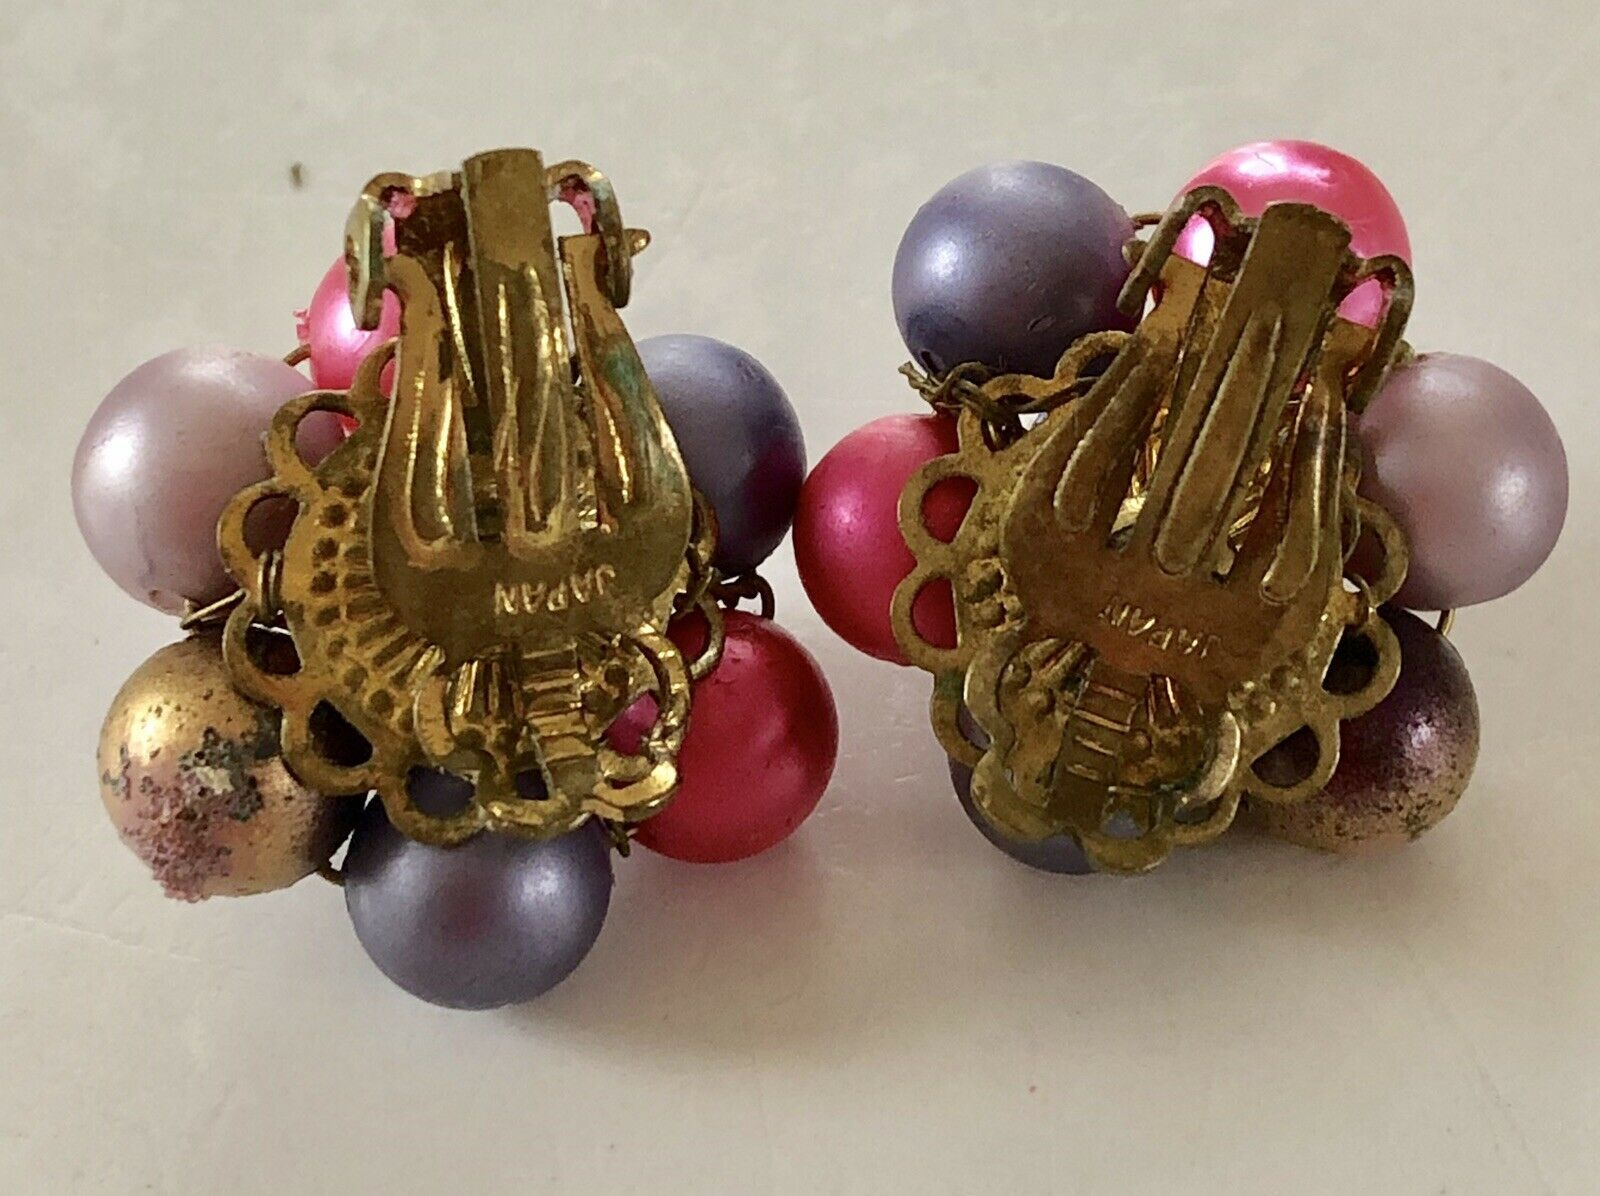 Vintage 50's Mid-Cent Purple, Pinks & Gold Luster Cluster Earrings Signed Japan